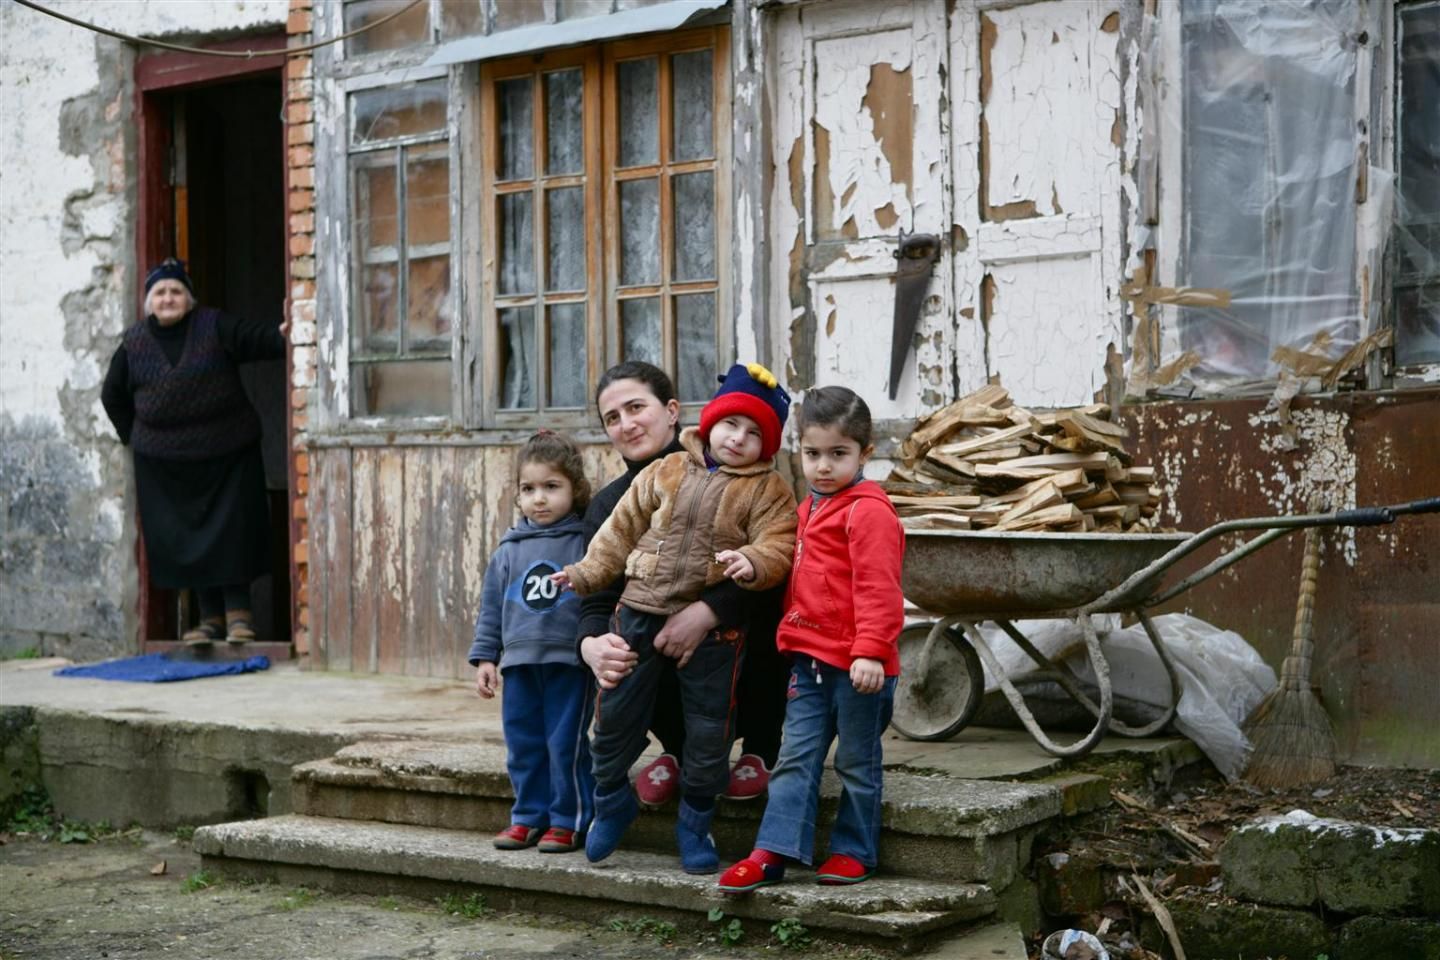 A mother and her three children in Georgia. The family live in extreme poverty but with UNICEF's support they have managed to stay together.